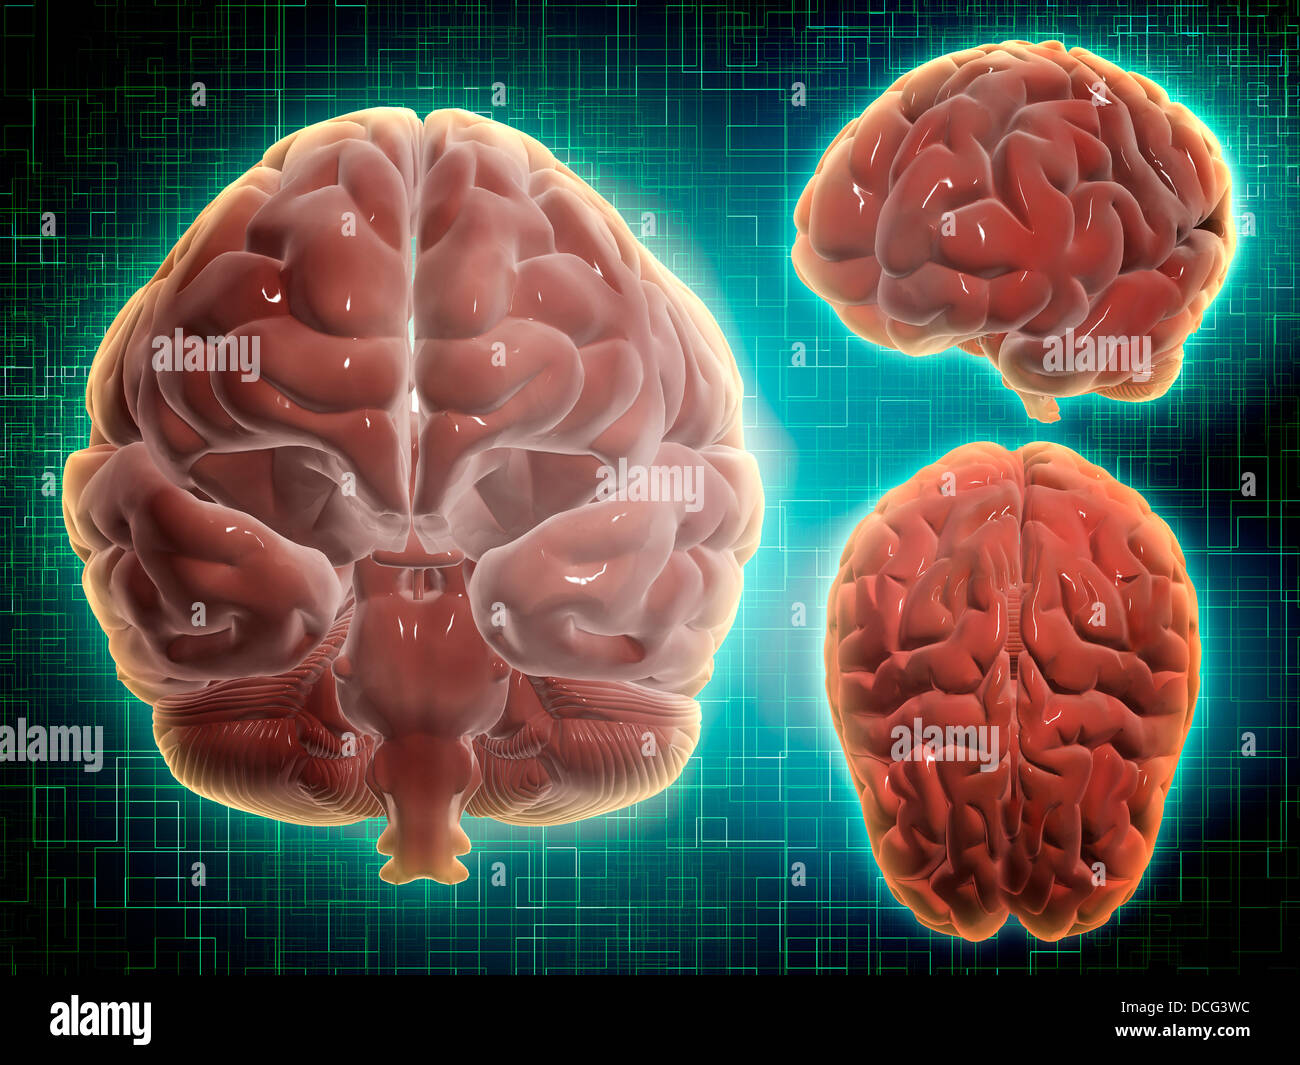 Conceptual image of human brain at different angles. - Stock Image